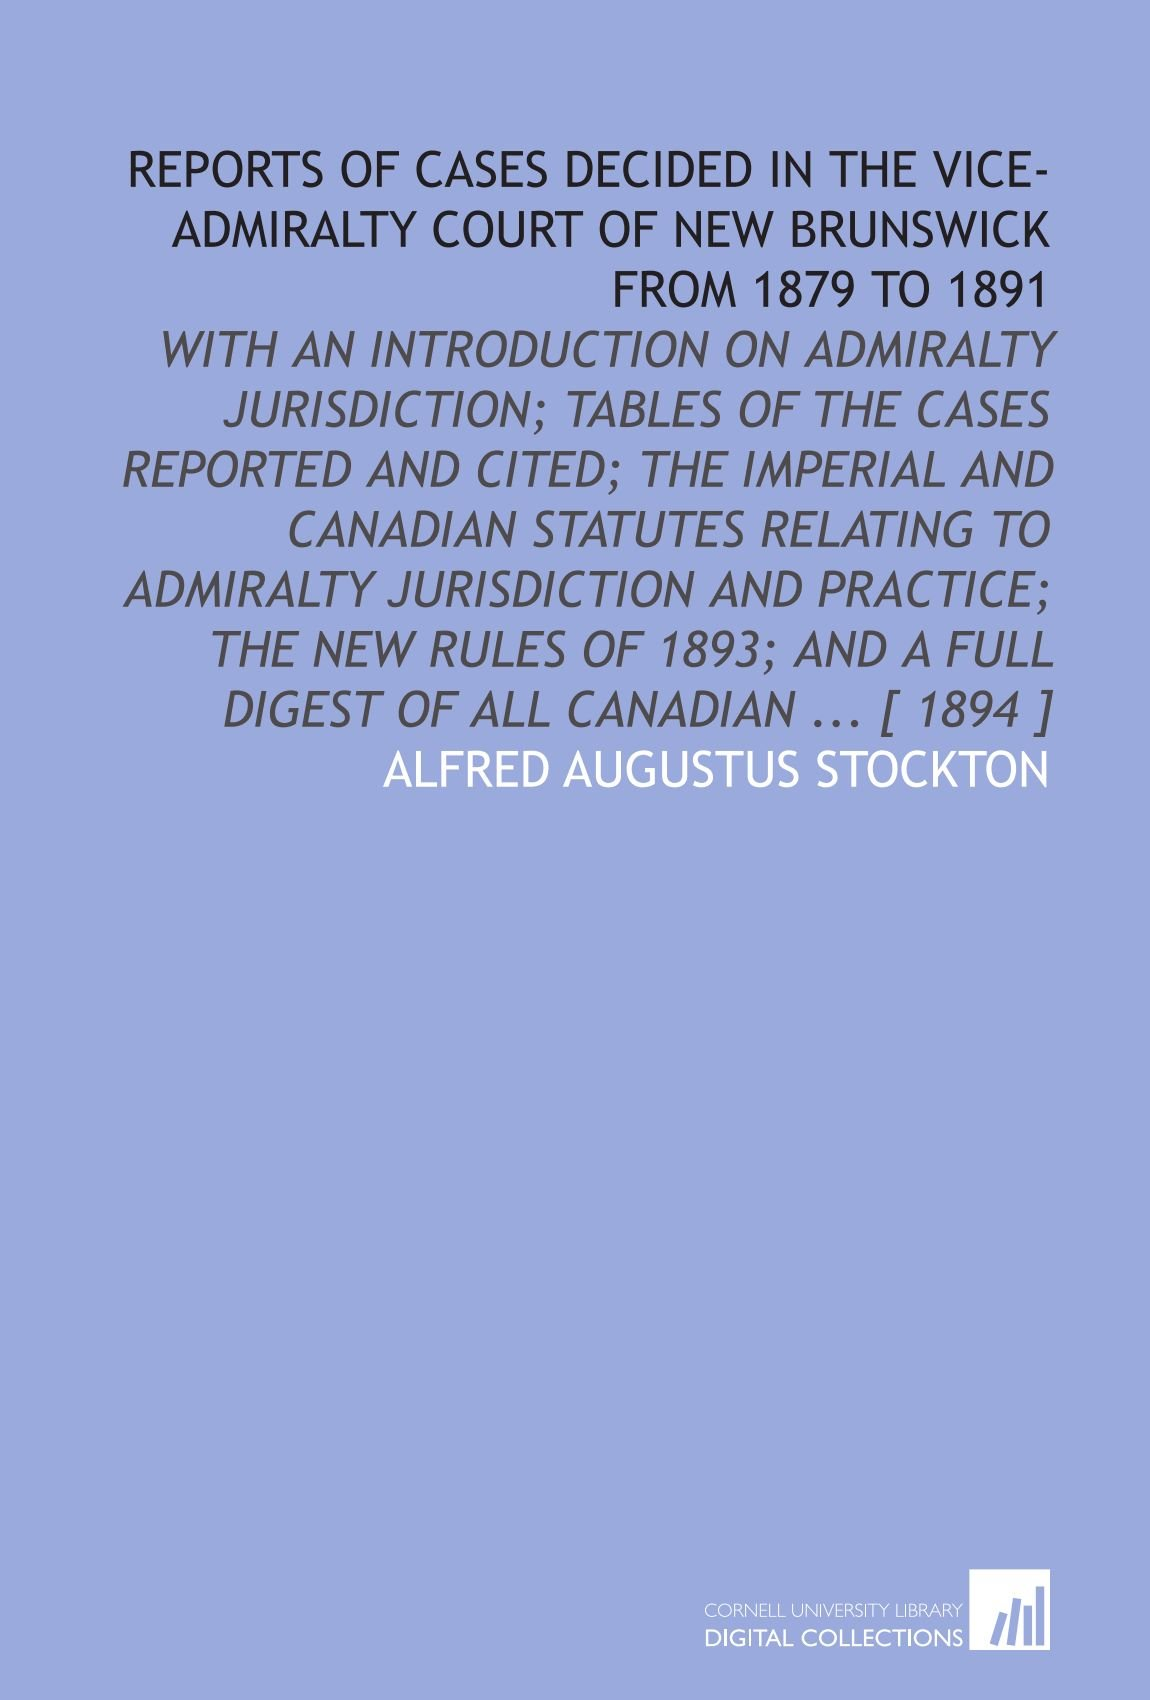 Download Reports of cases decided in the Vice-Admiralty Court of New Brunswick from 1879 to 1891: with an introduction on admiralty jurisdiction; tables of the a full digest of all Canadian [ 1894 ] pdf epub